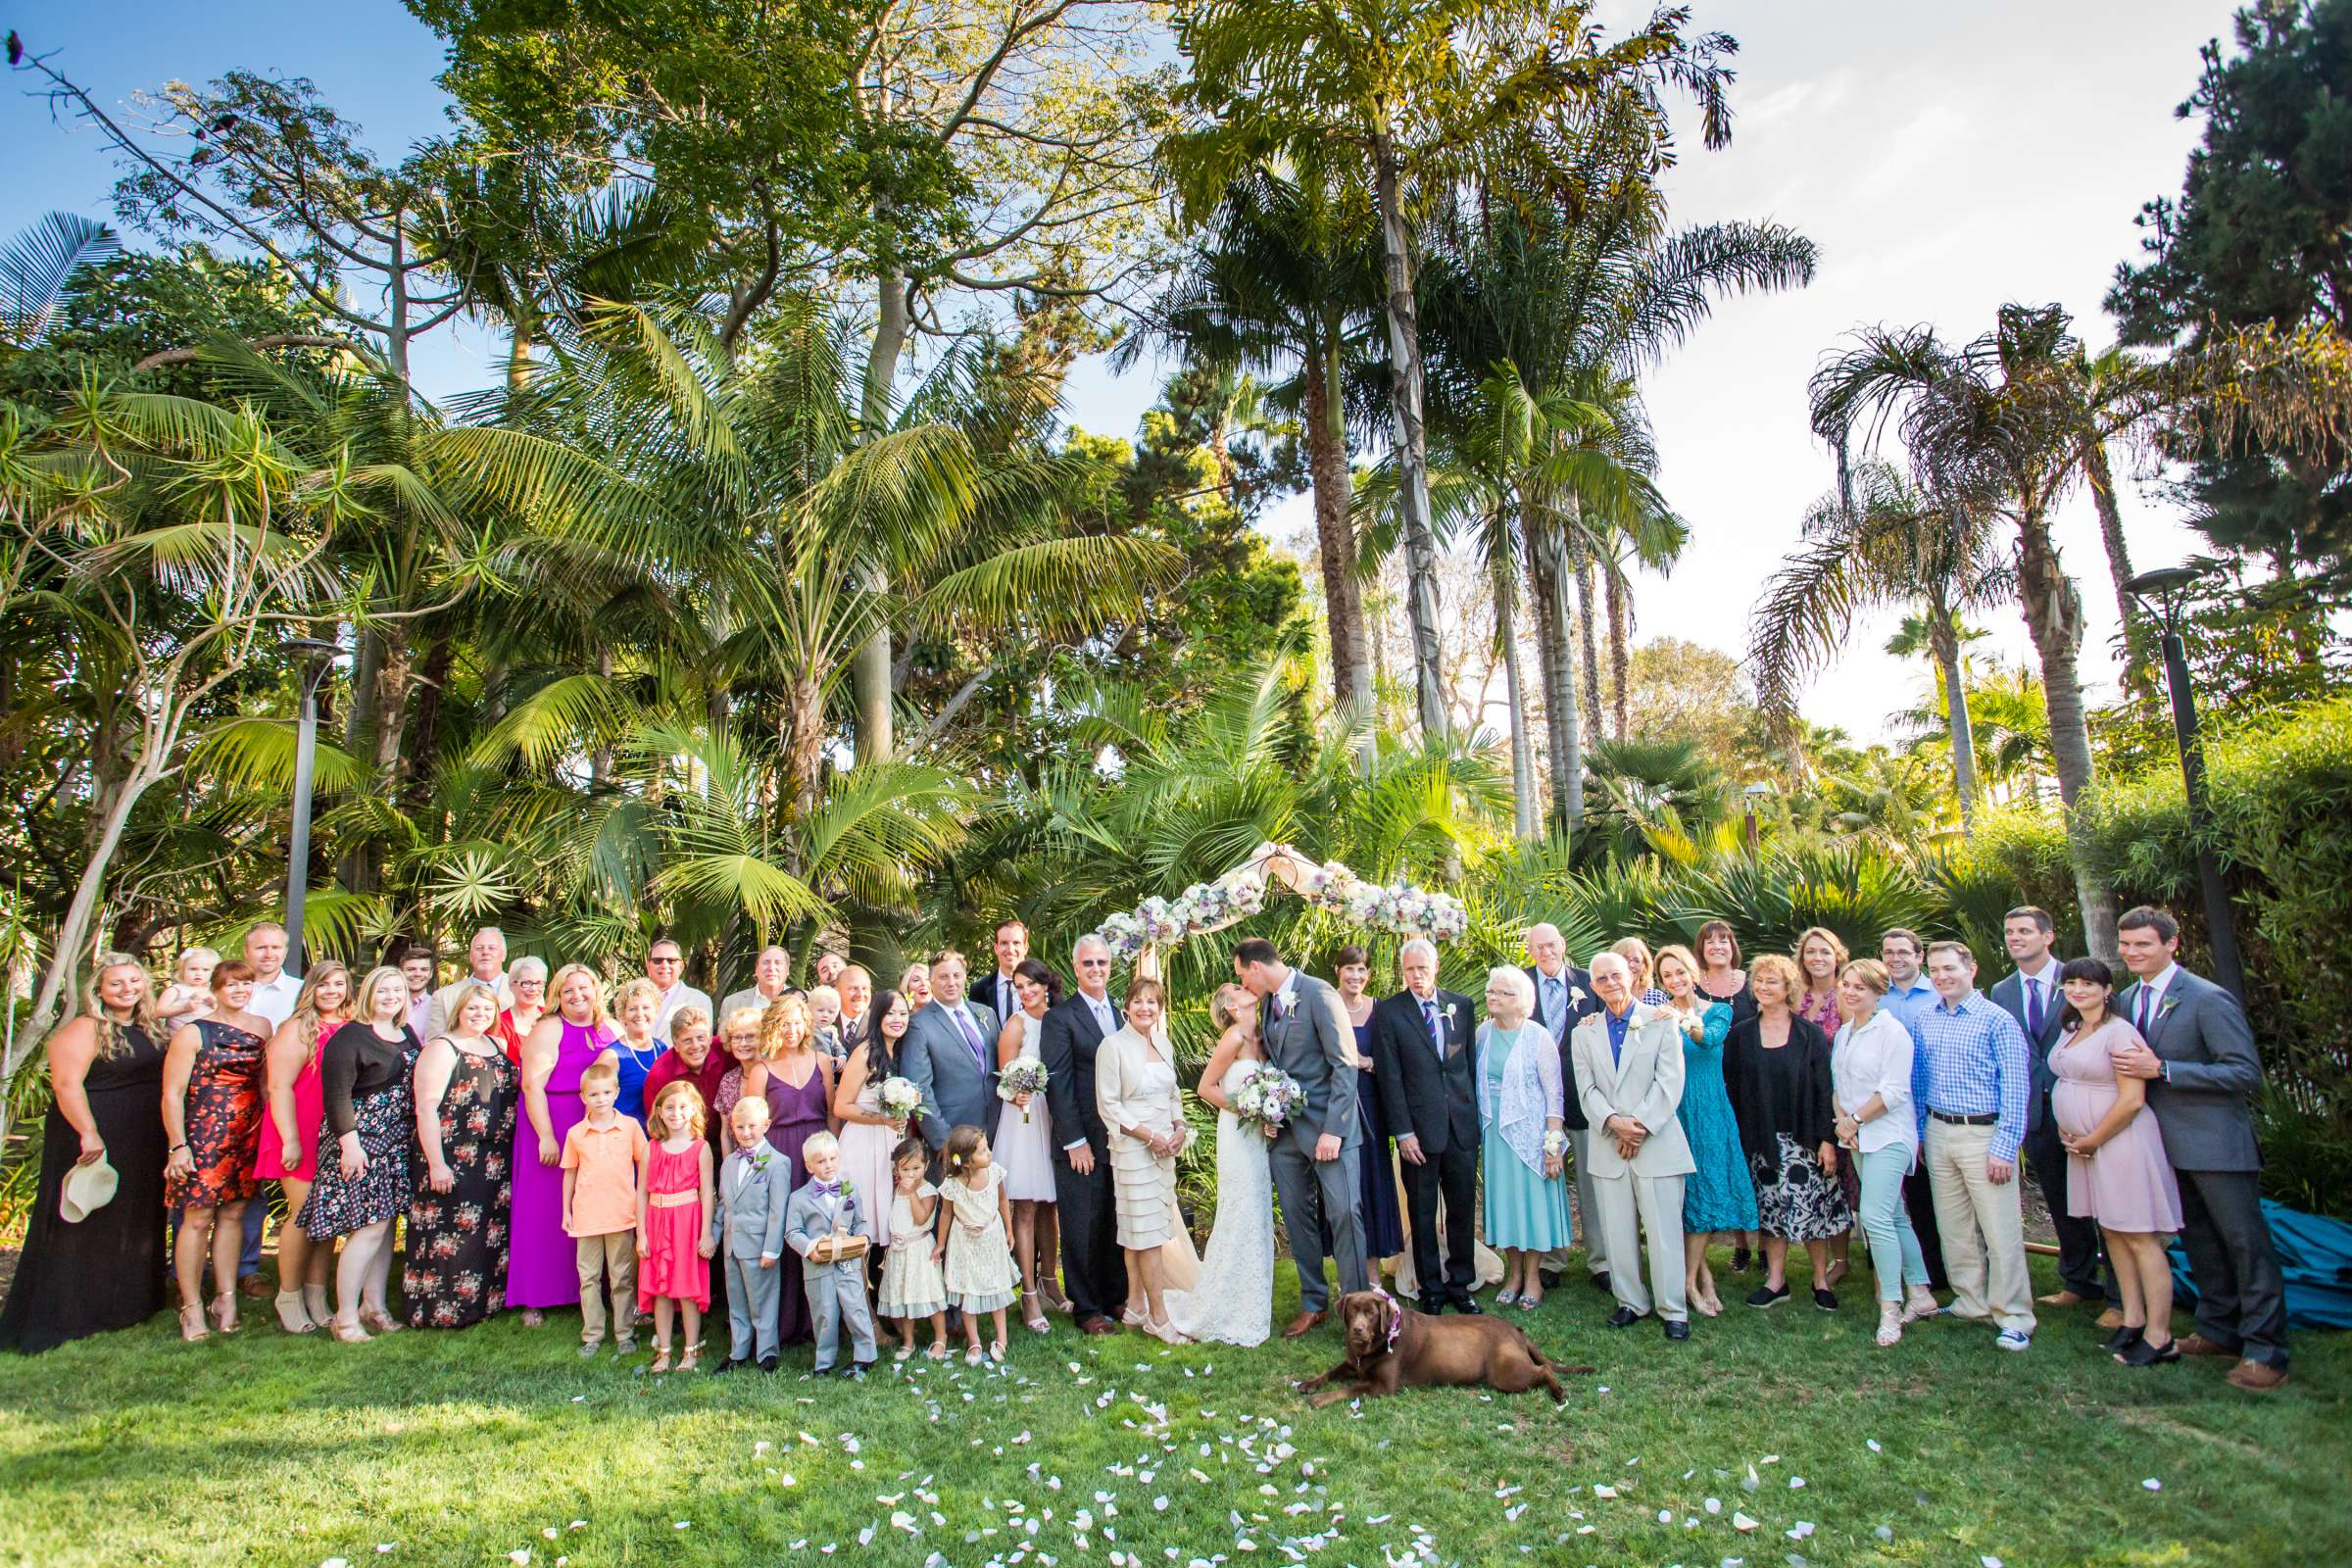 Paradise Point Wedding, Kimberly and Michael Wedding Photo #54 by True Photography